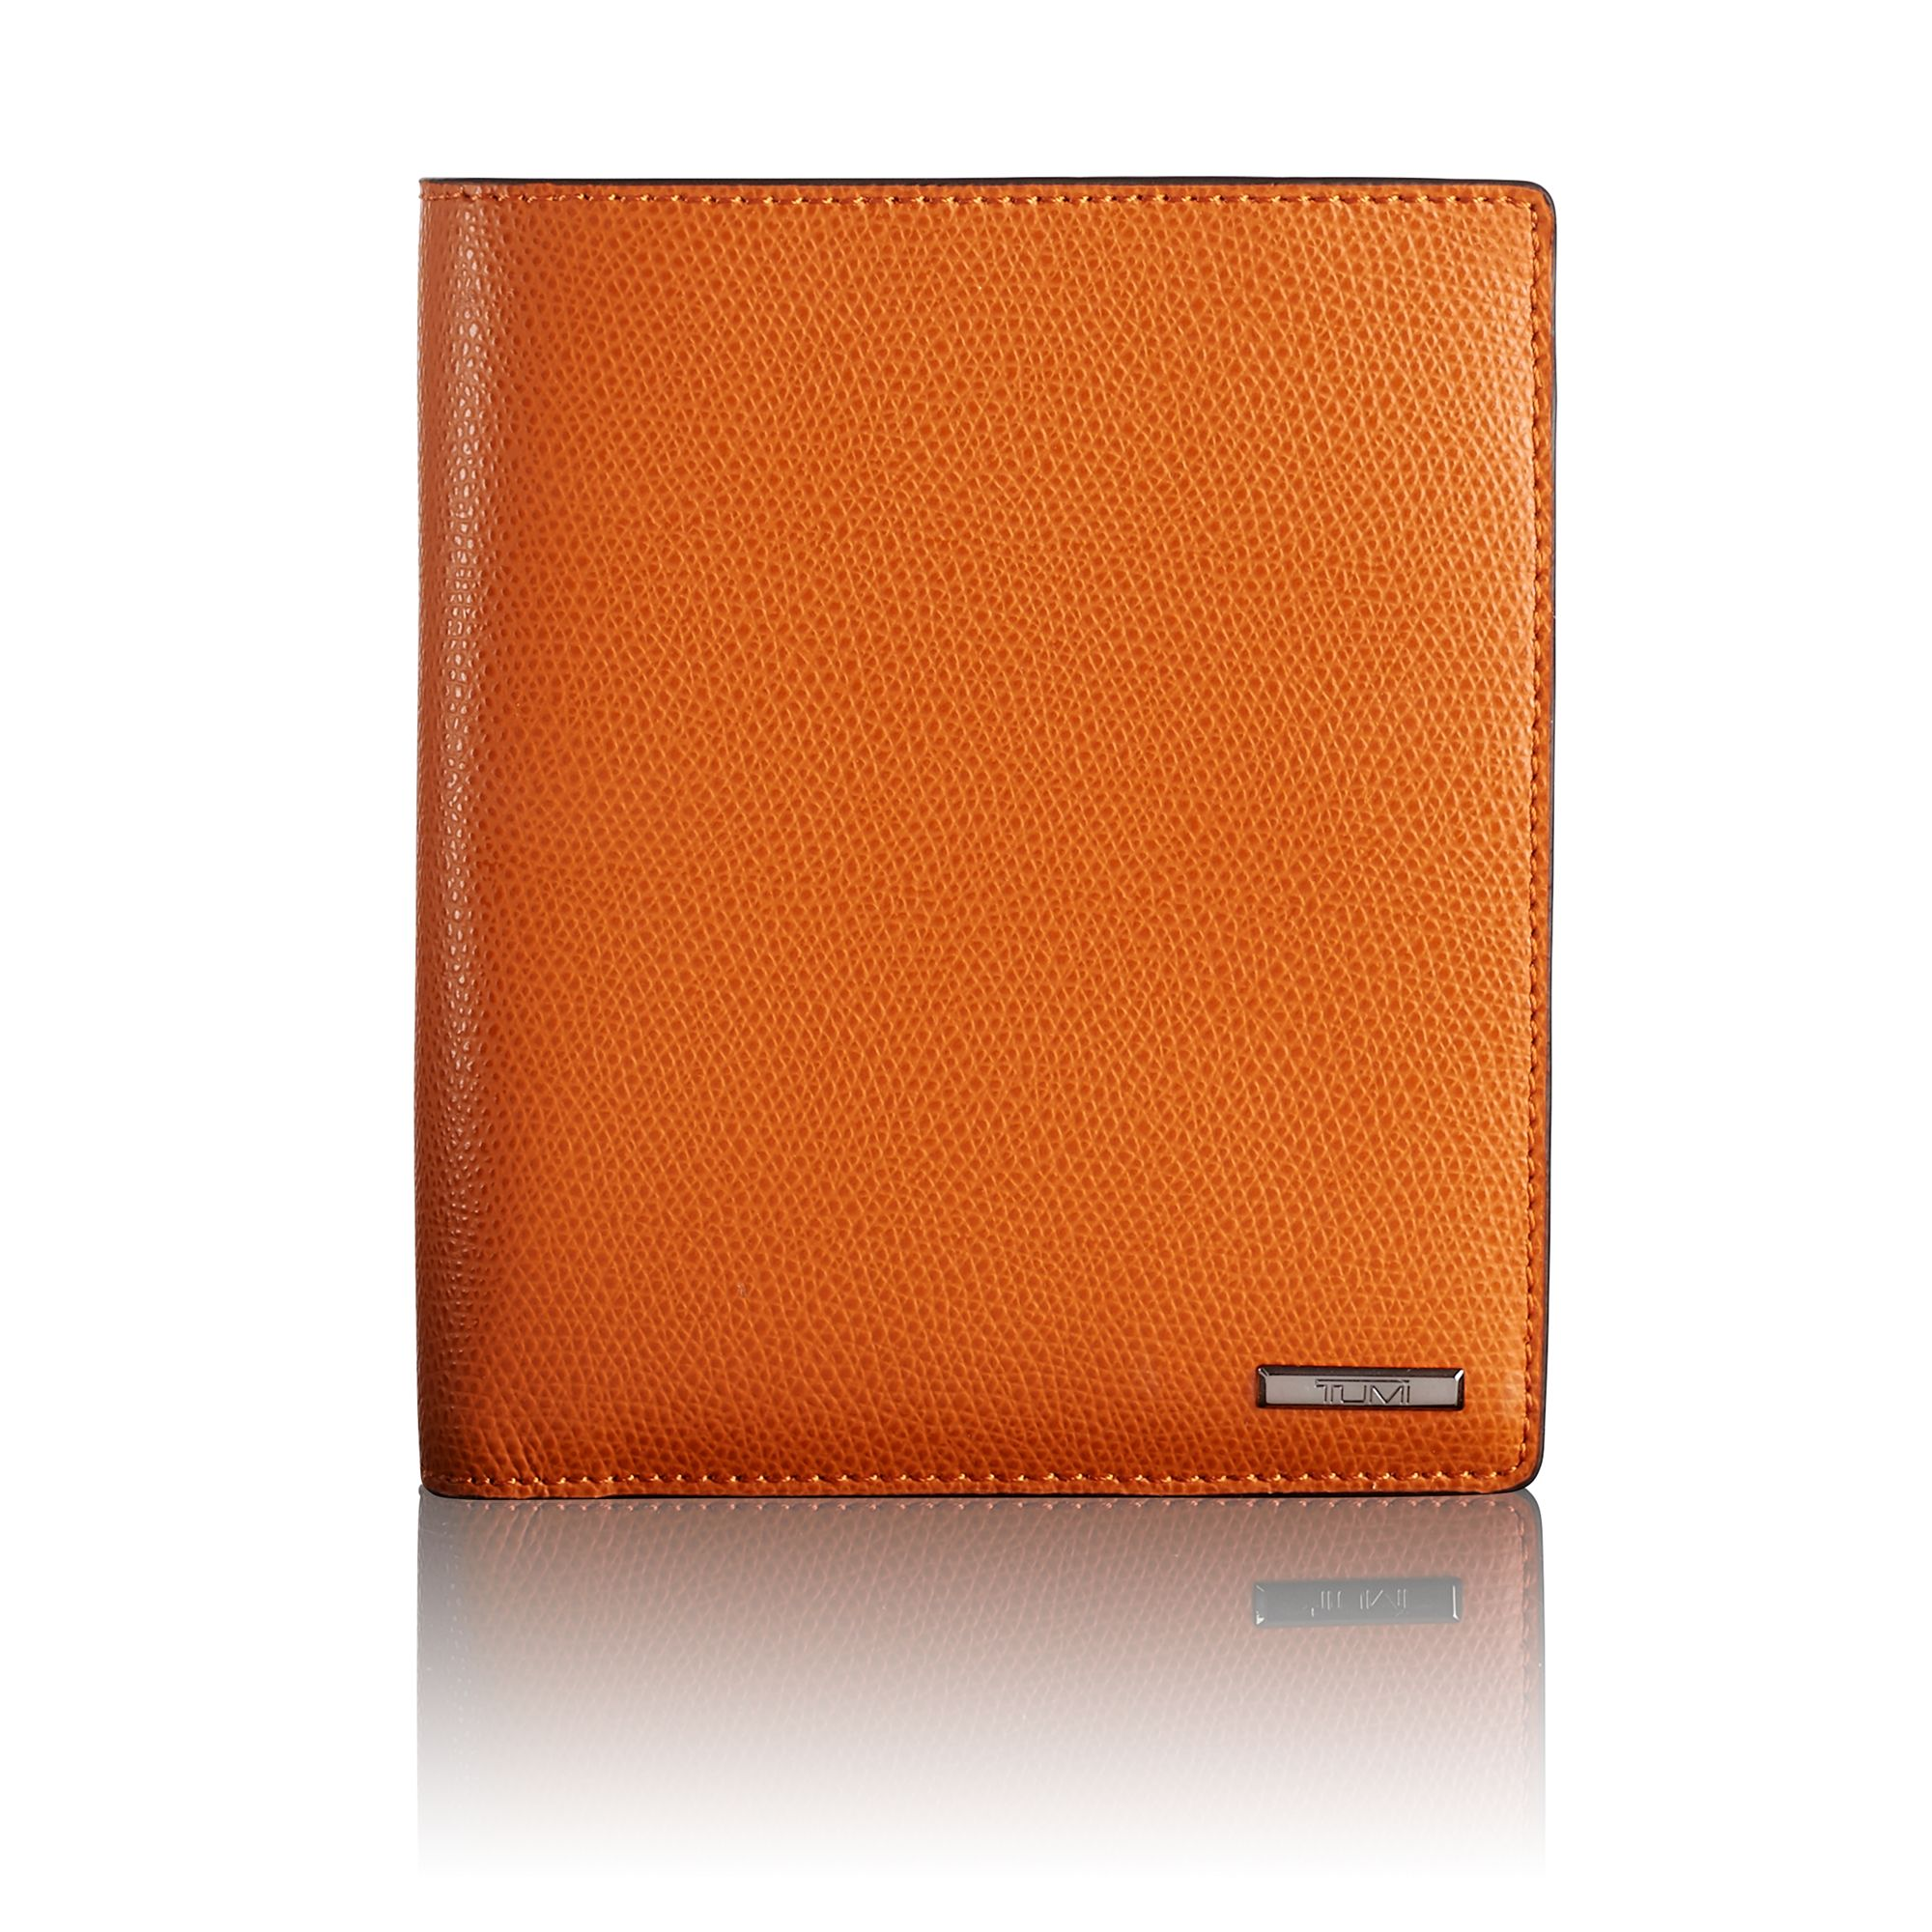 ON SALE NOW and available in your choice of subtle or stylish leathers, this passport wallet by TUMI exudes class and quality. Designed in a billfold style, you'll be able to keep your travel documents, credit cards, IDs and cash at your immediate fingertips. And because it's made by TUMI, this thing will last you a serious lifetime.  (Orig. $145, On Sale Now $85)